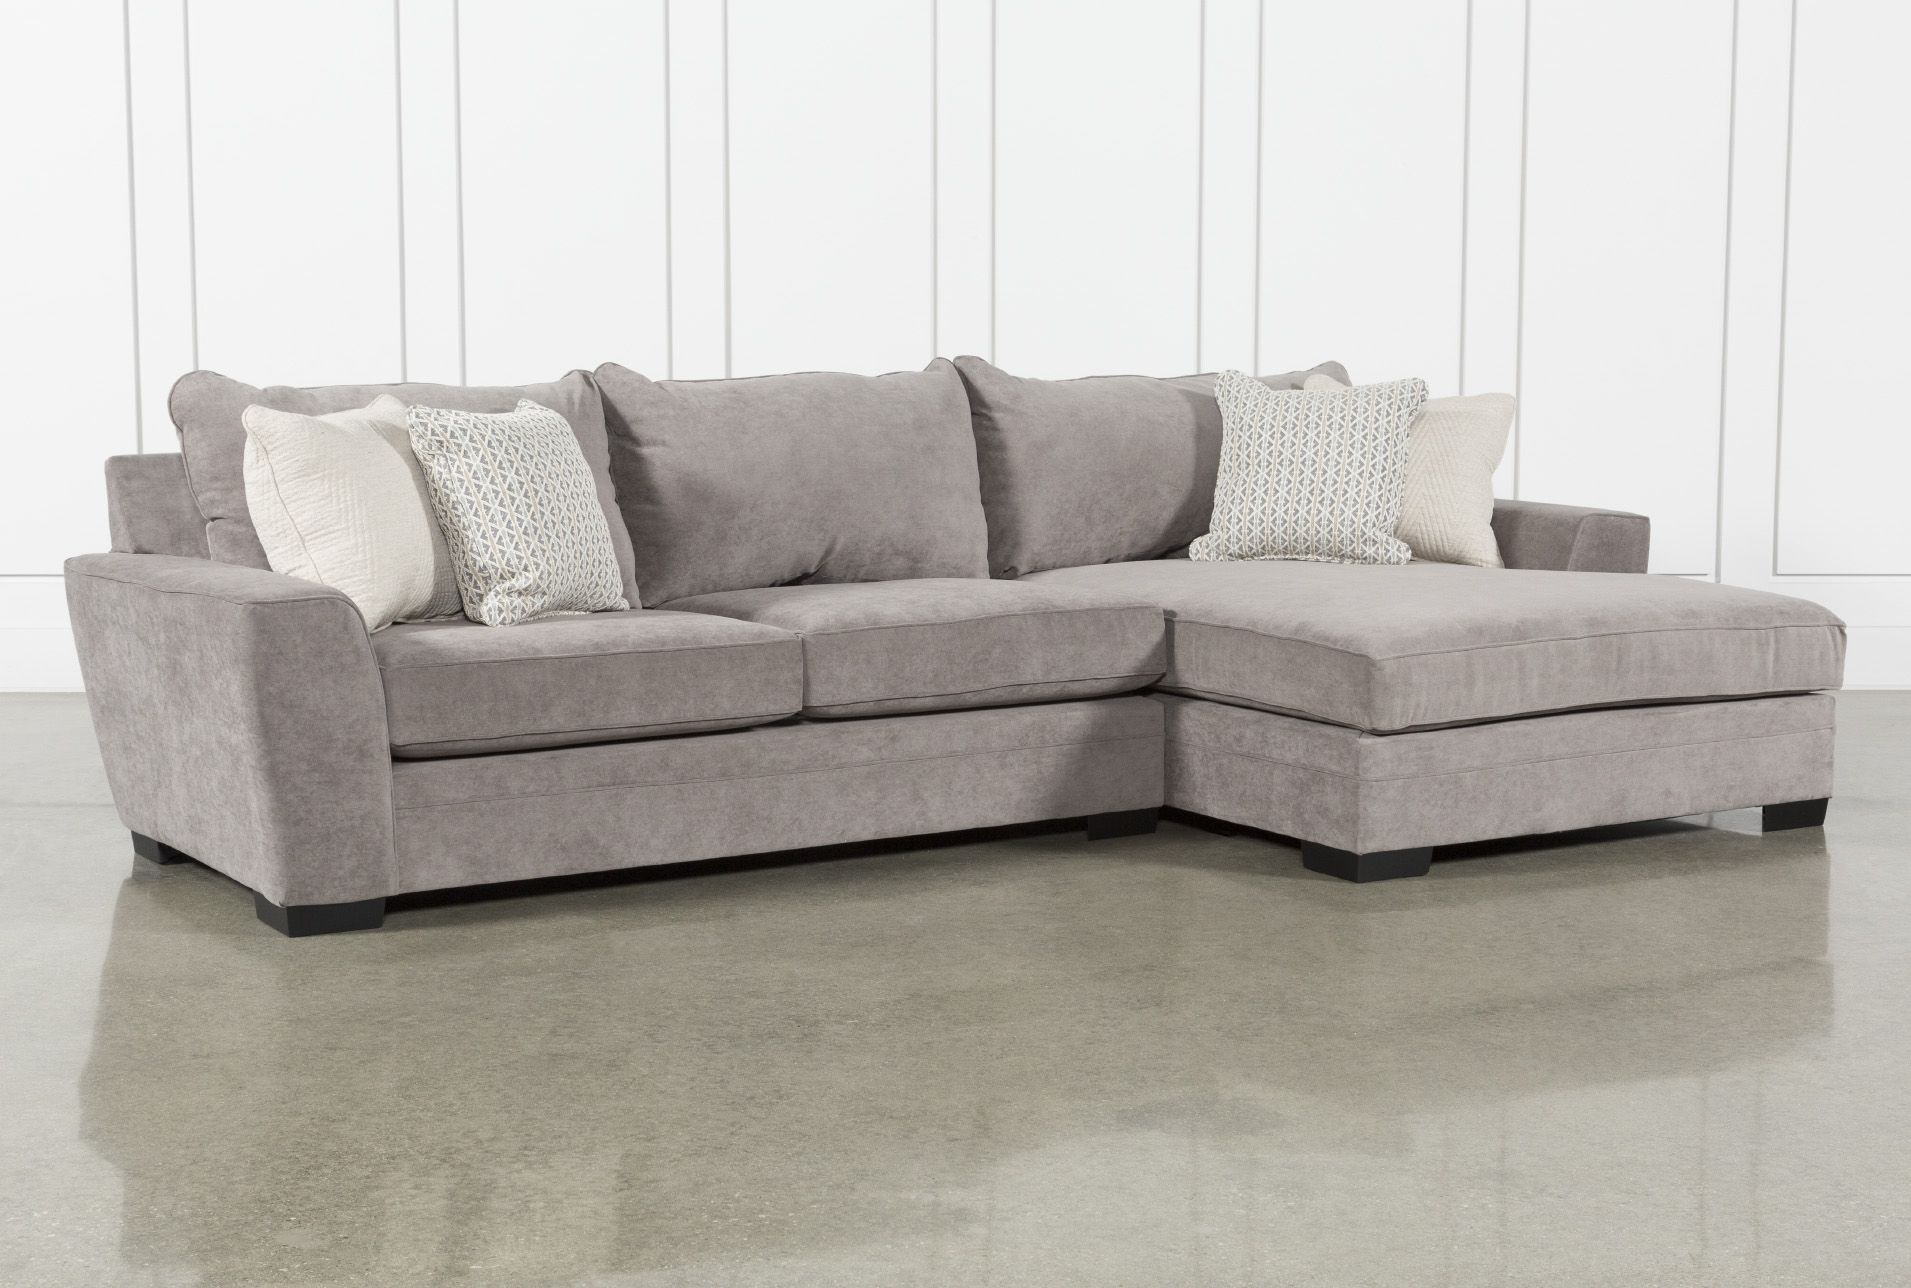 Delano Charcoal 2 Piece Sectional With Right Arm Facing Chaise In